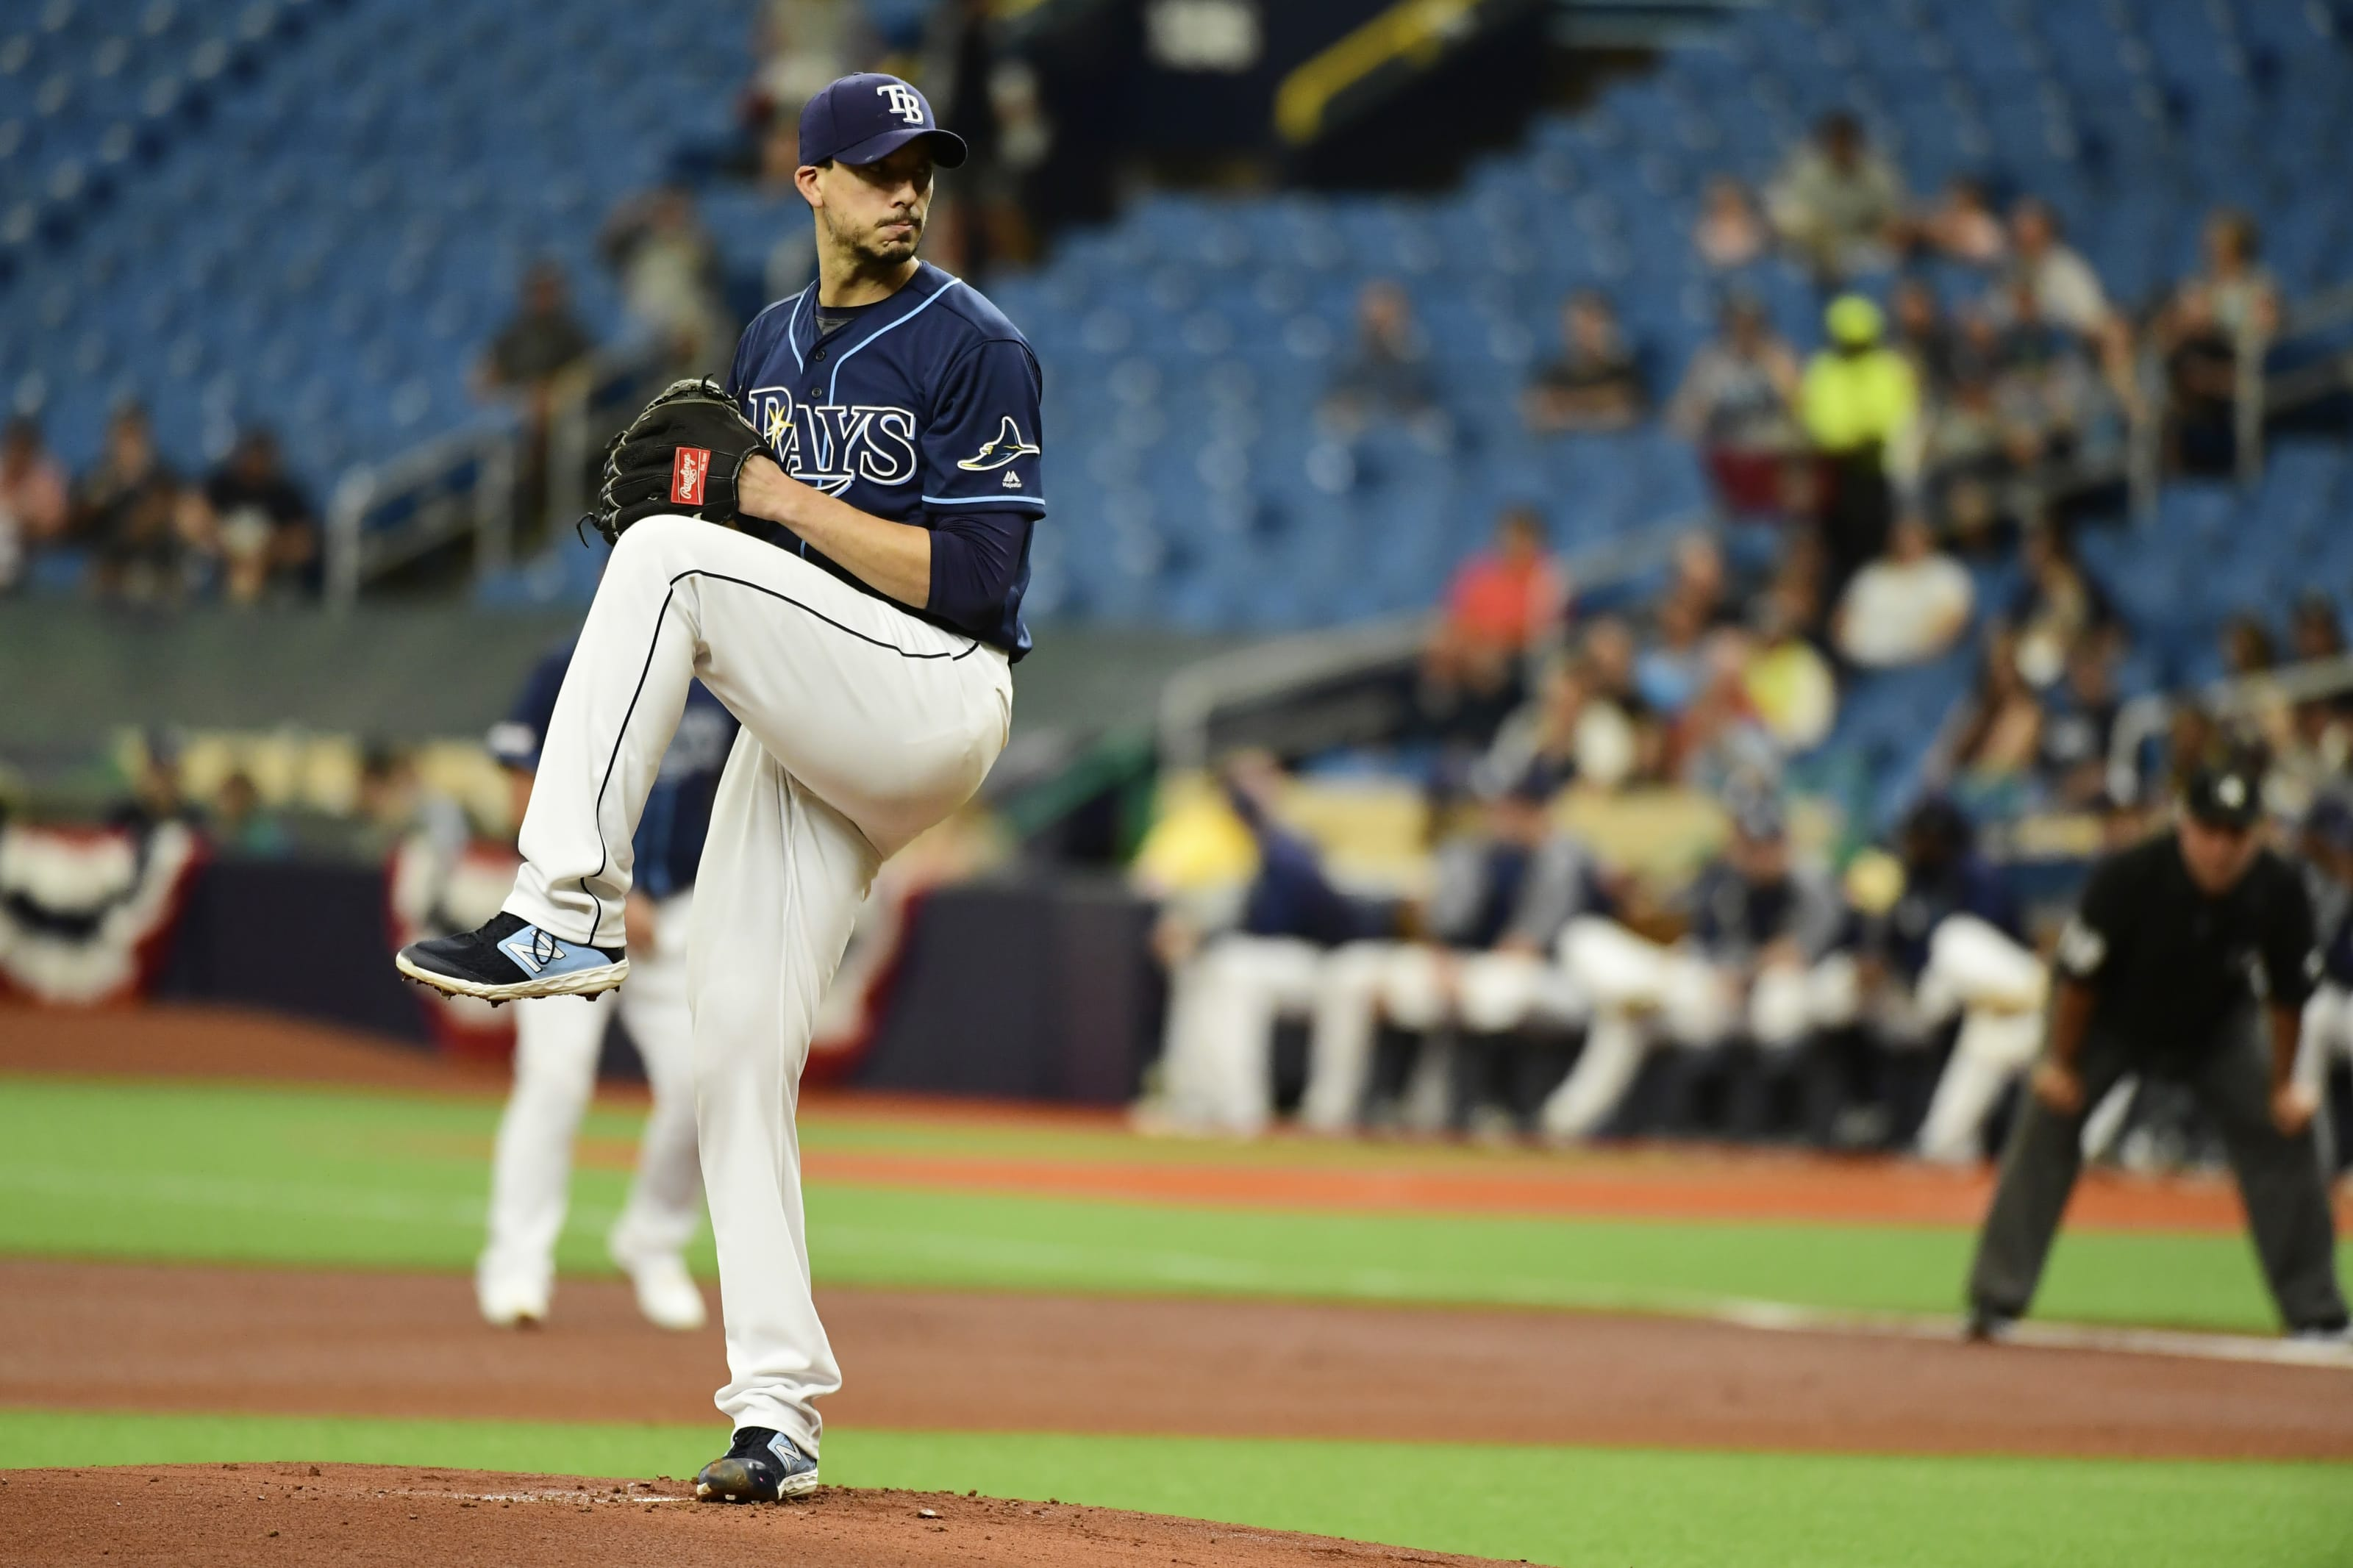 tampa bay rays 2019 statistical leaders pitching tampa bay rays 2019 statistical leaders